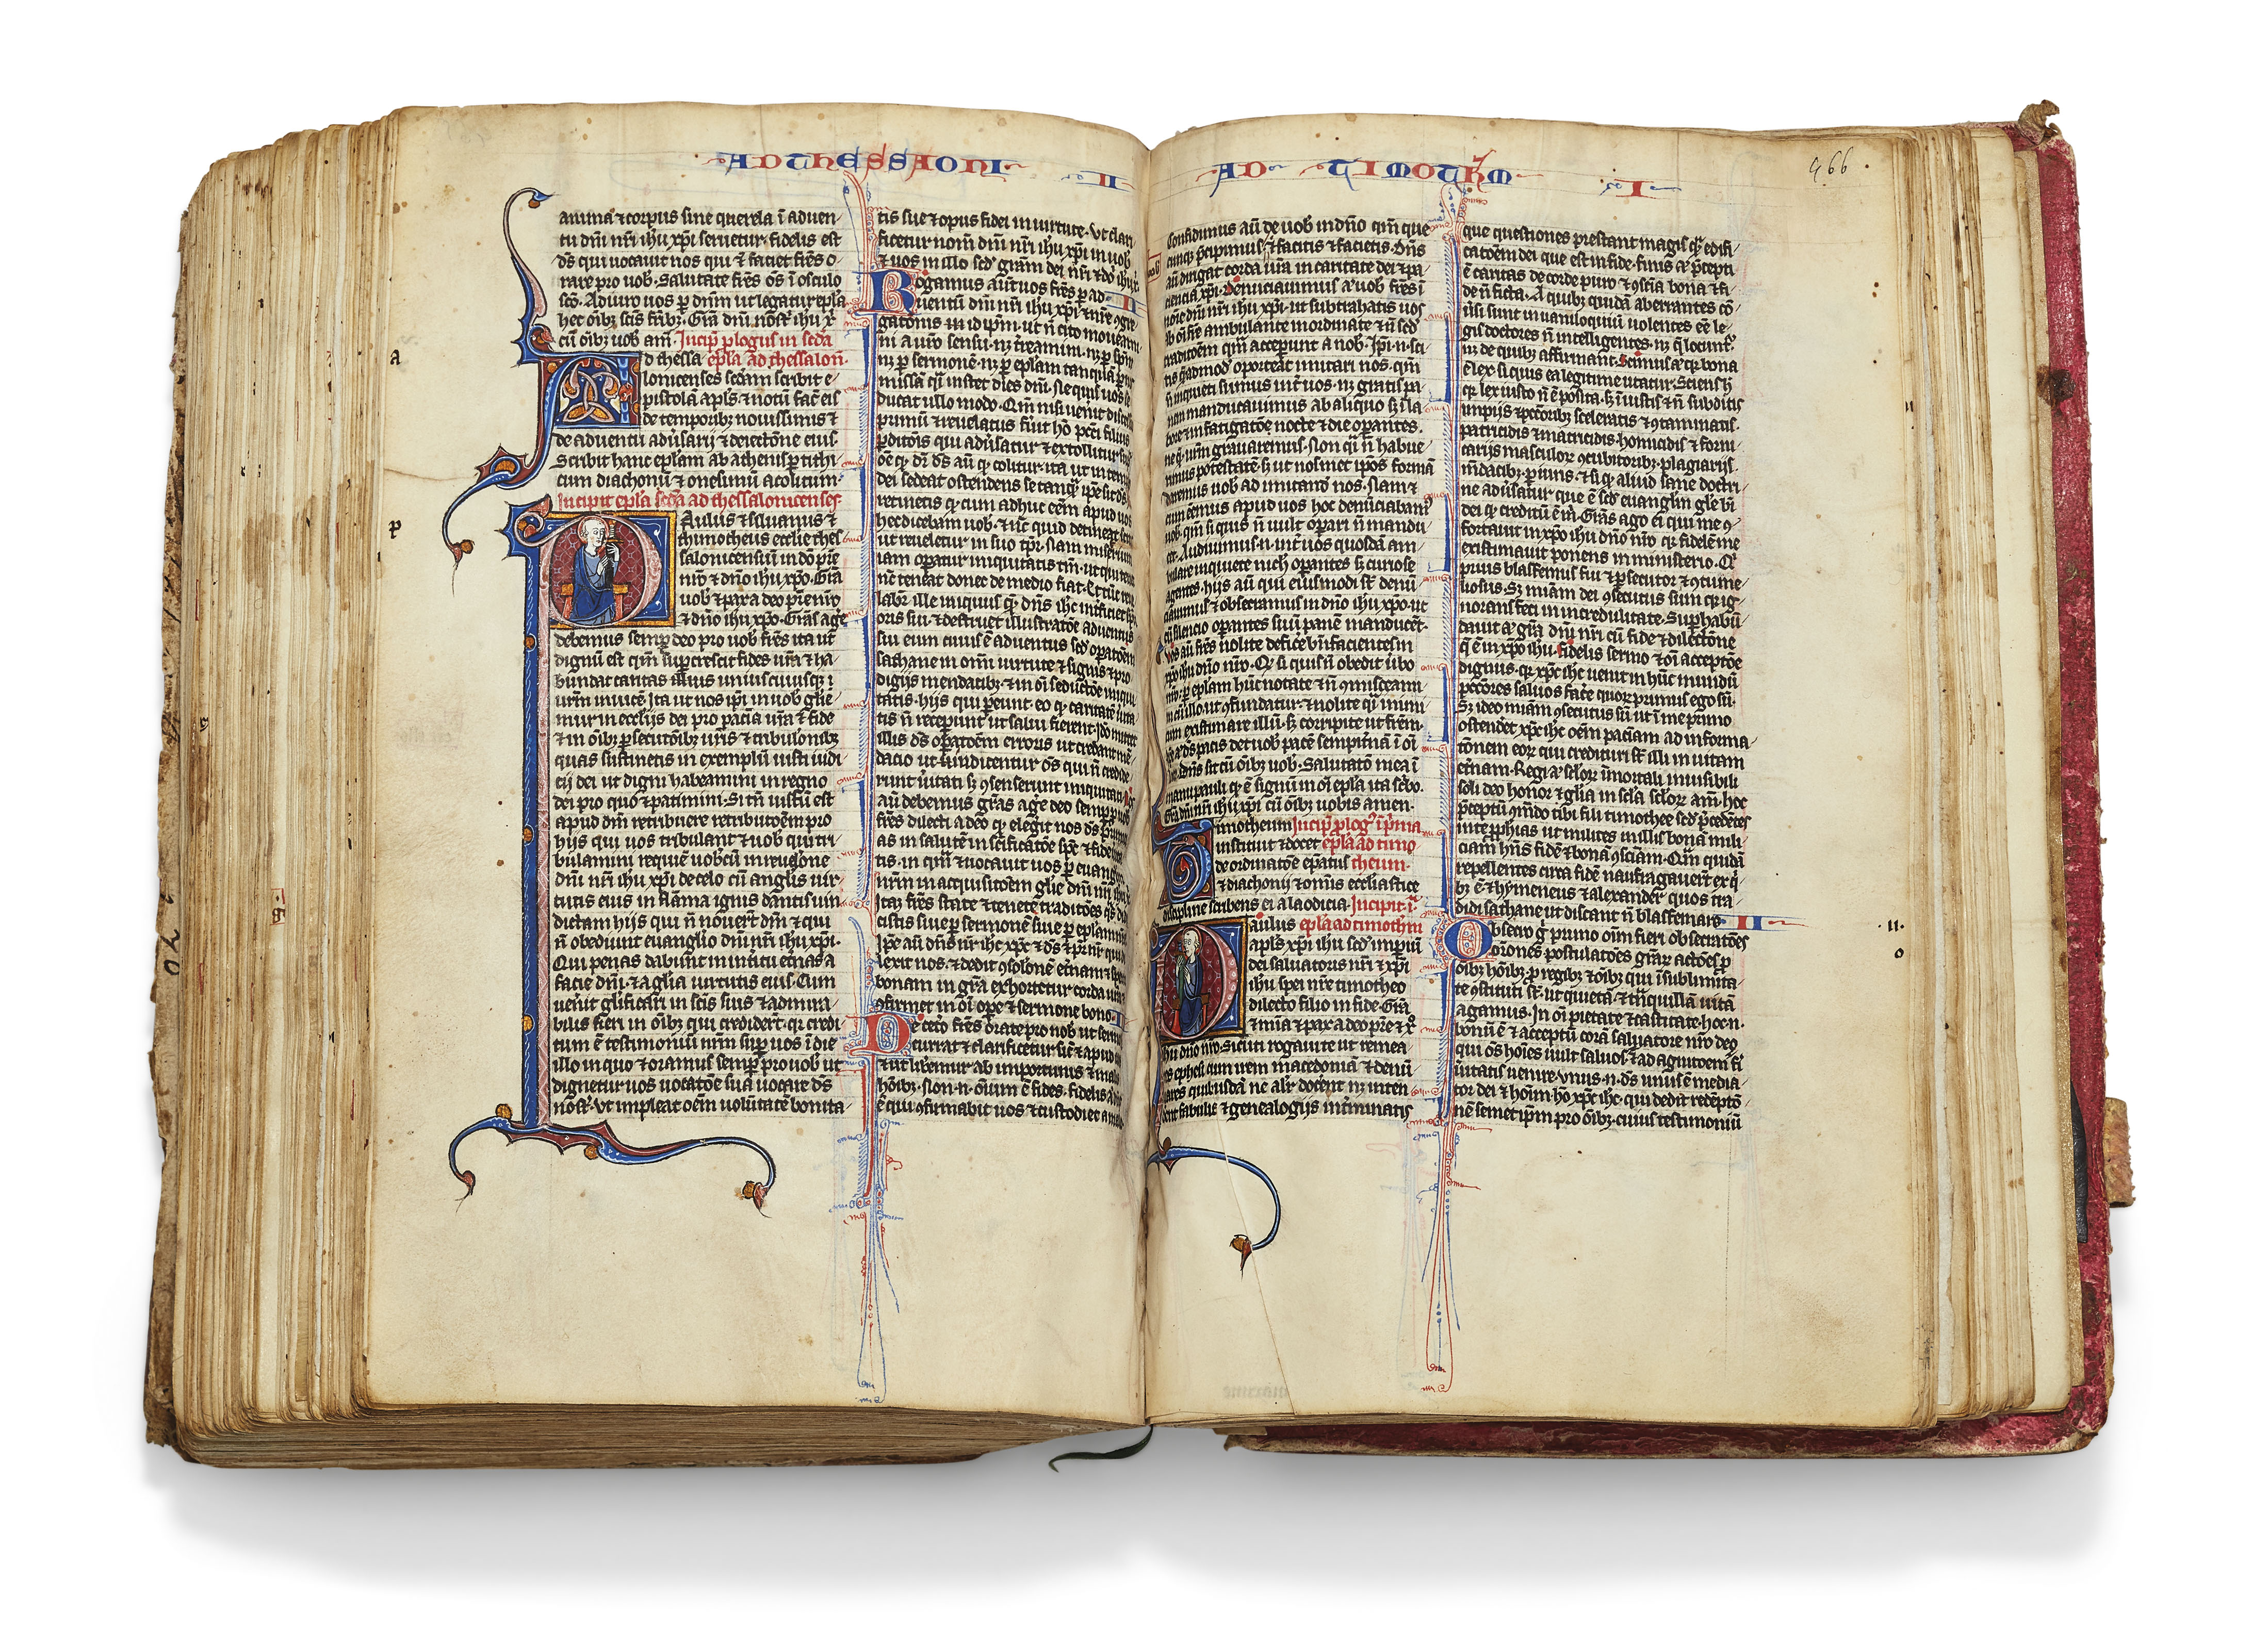 BIBLE in the Latin translation of St Jerome with the customary prologues and the Interpretation of Hebrew Names, illuminated manuscript on vellum [Paris, 1260s]